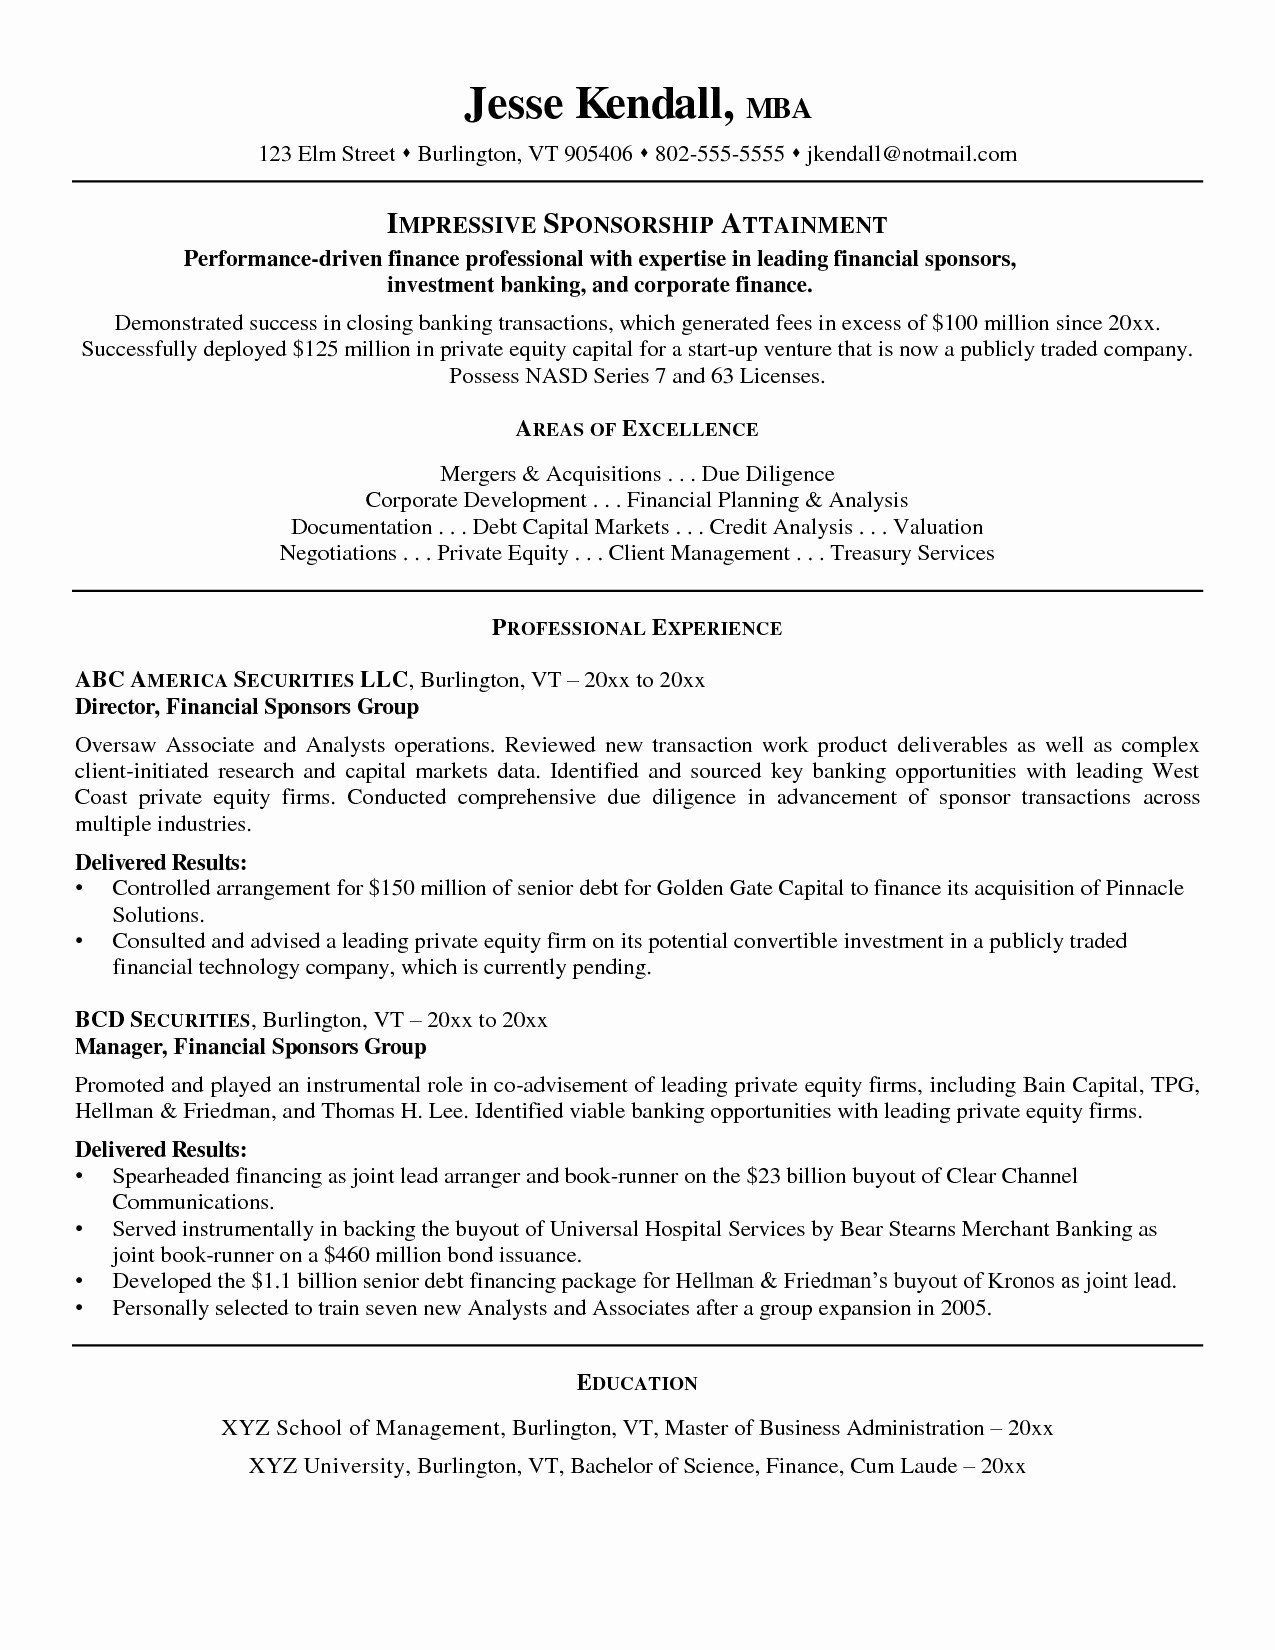 Wall Street Oasis Resume Template Lovely Wso Oasis